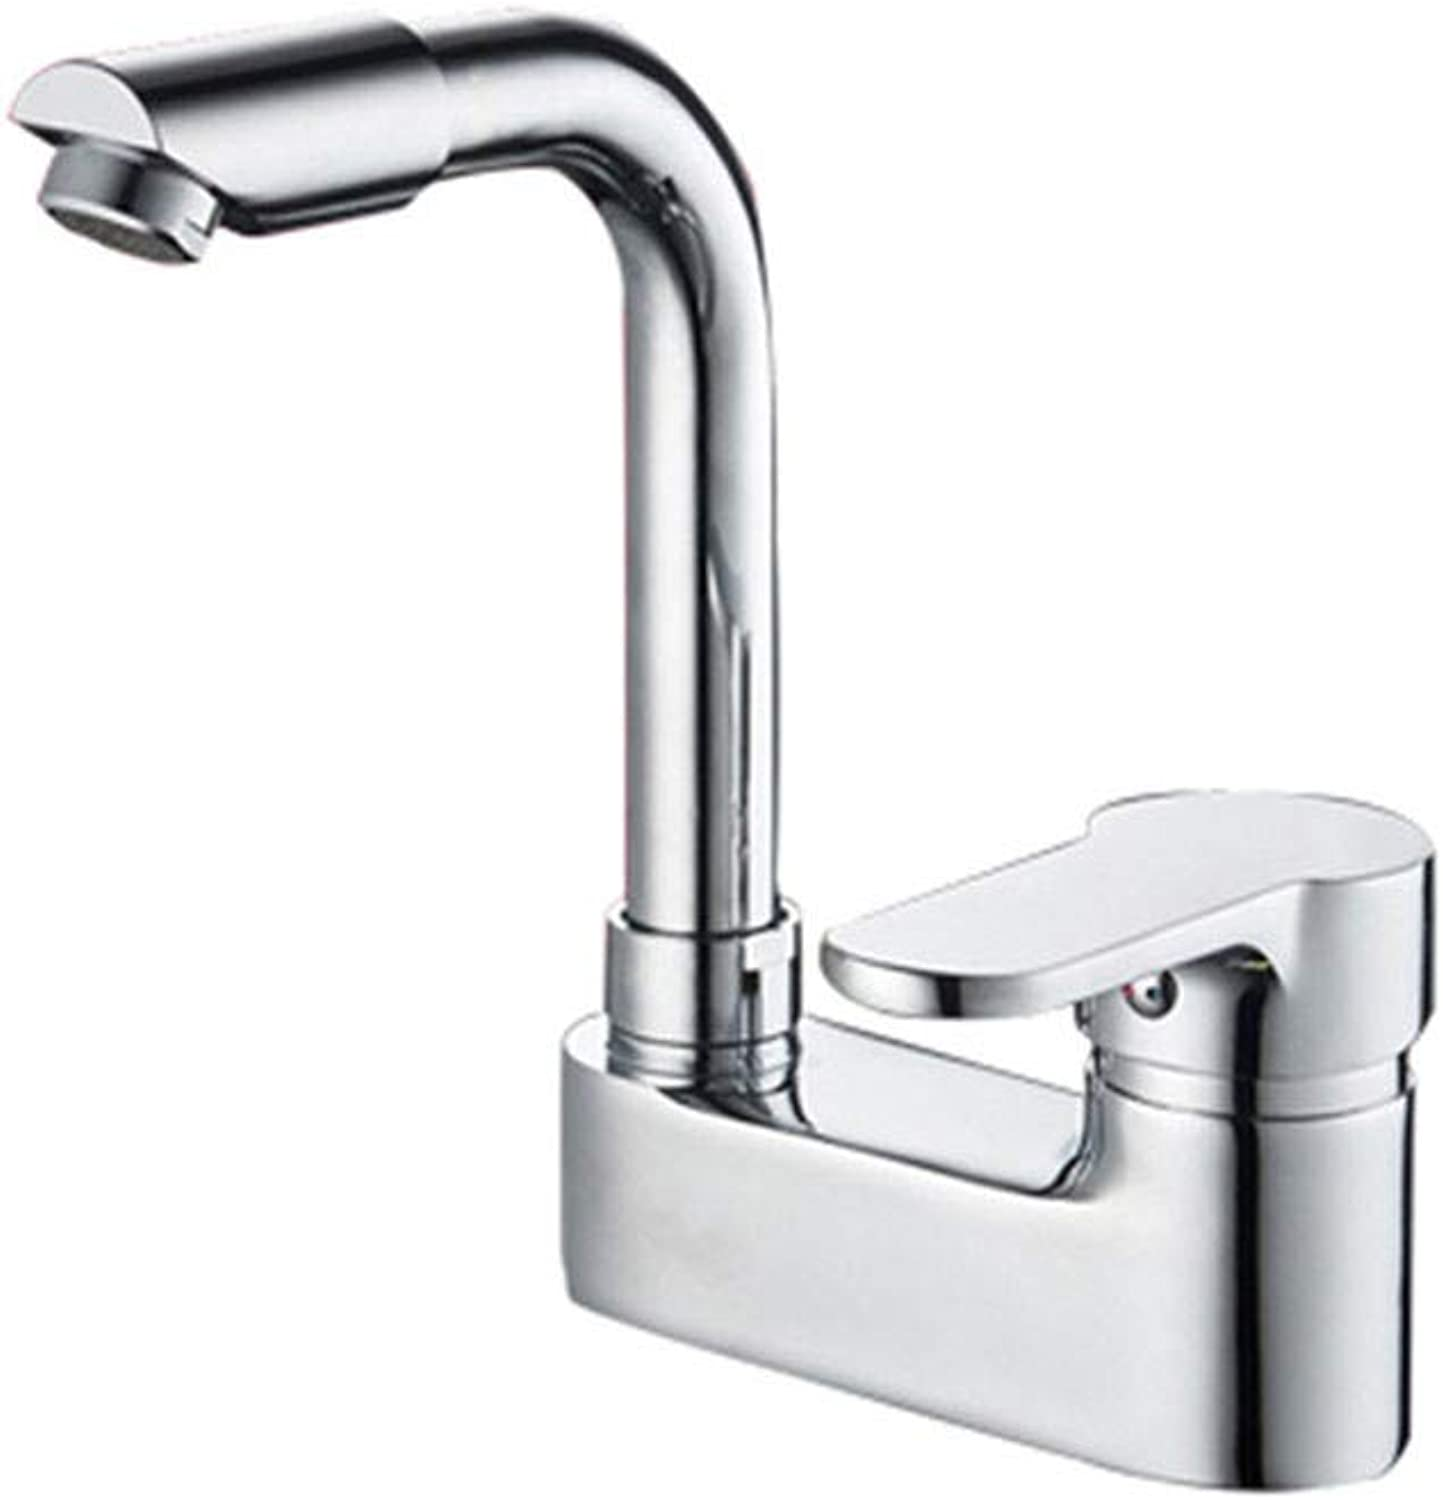 Hot and Cold Faucet Bathroom Bathroom Basin redating redating Head Double Hole Faucet Kitchen Sink Faucet Bathroom Sink Faucet